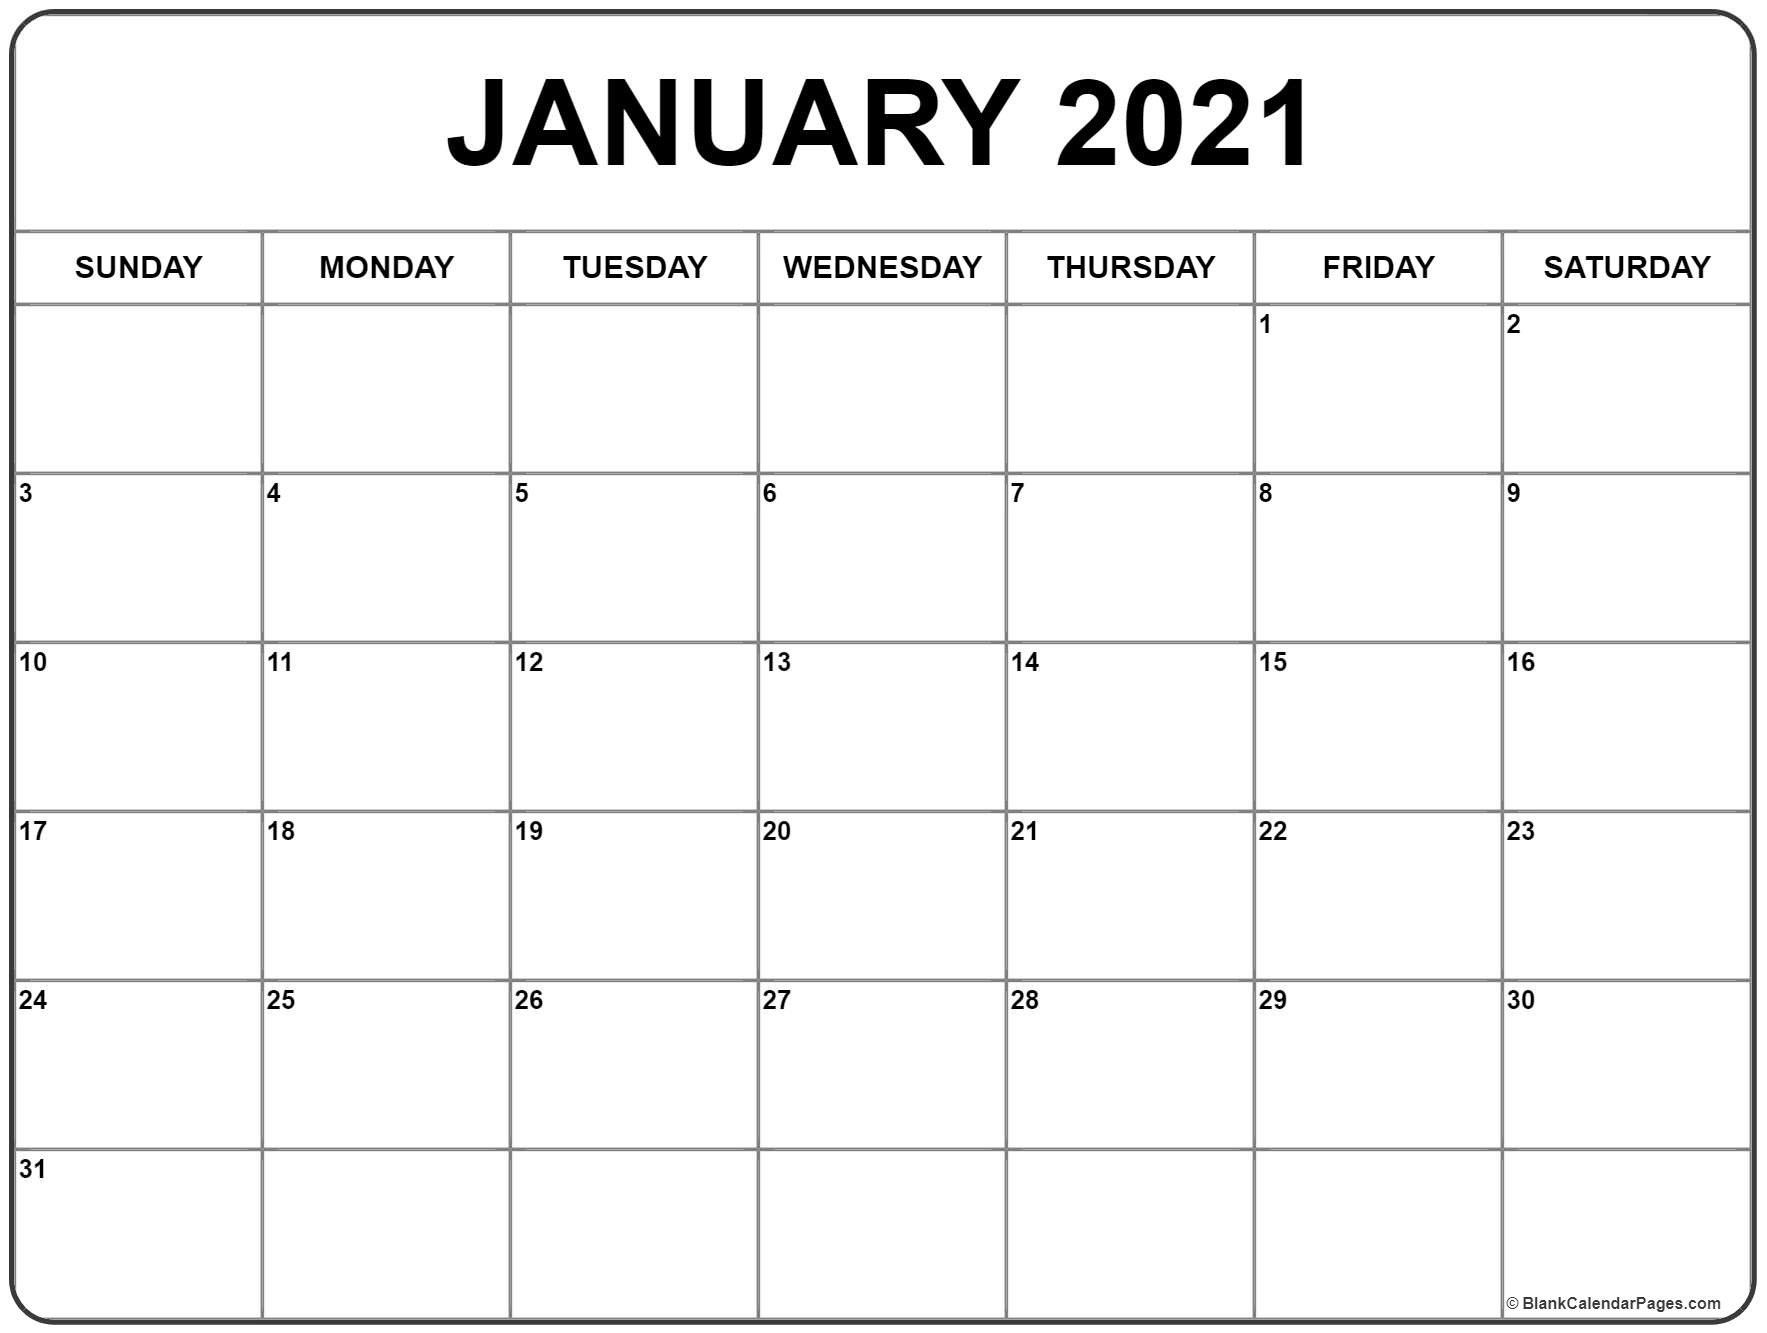 January 2021 Calendar Printable Free January 2021 Calendar Printable in 2020 | Monthly calendar